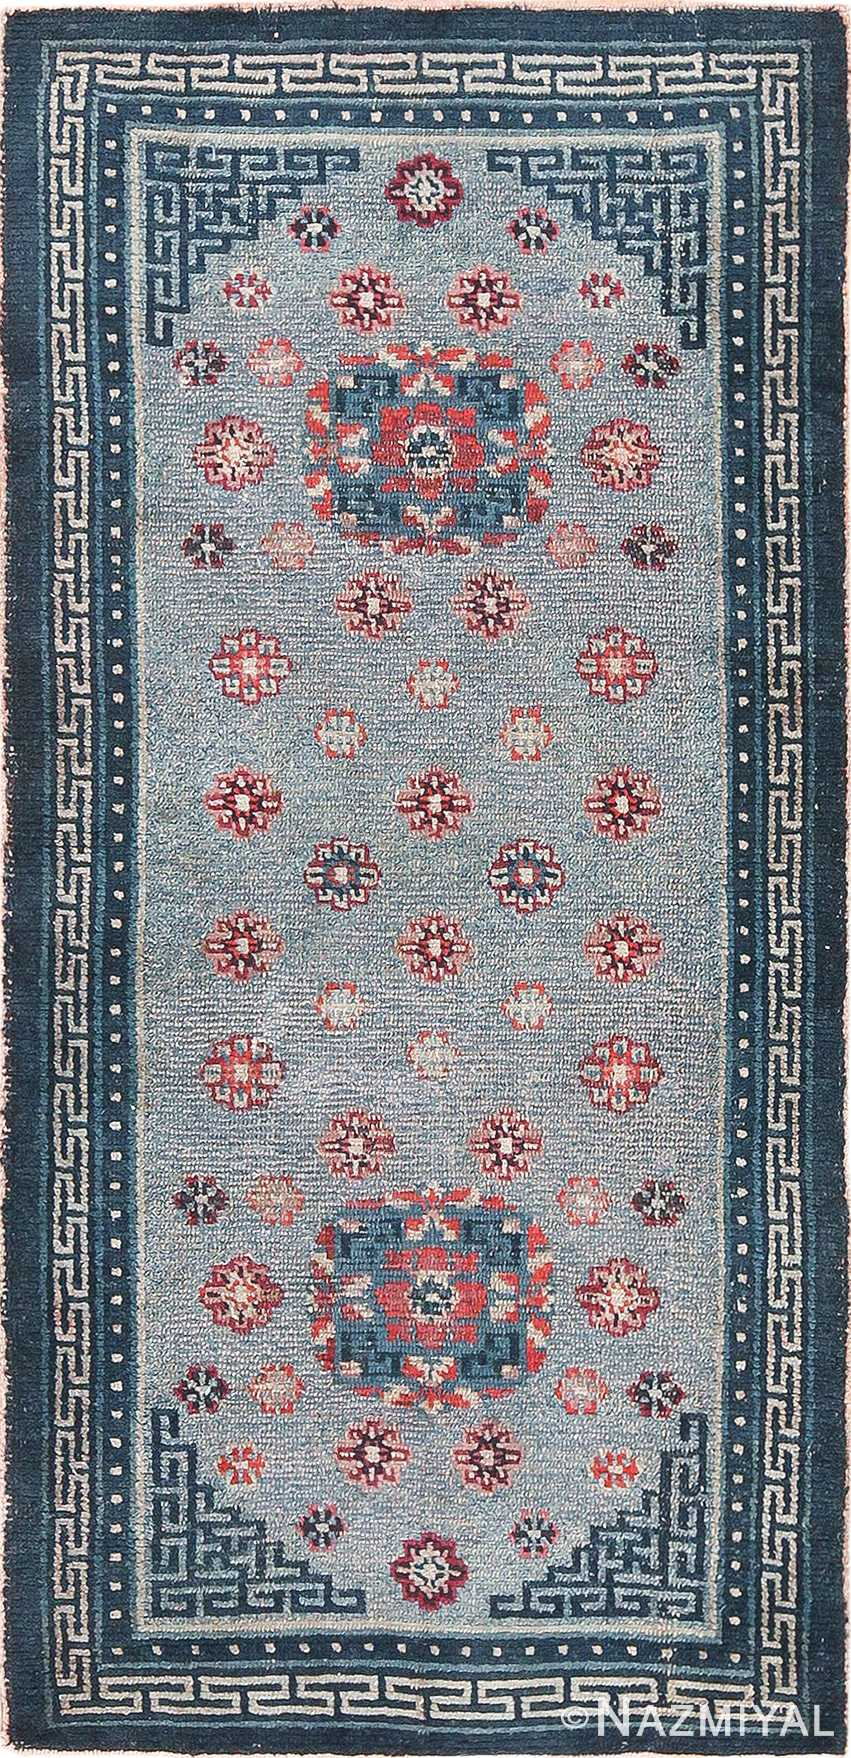 Small Scatter Size Antique Tibetan Rug 49796 - Nazmiyal